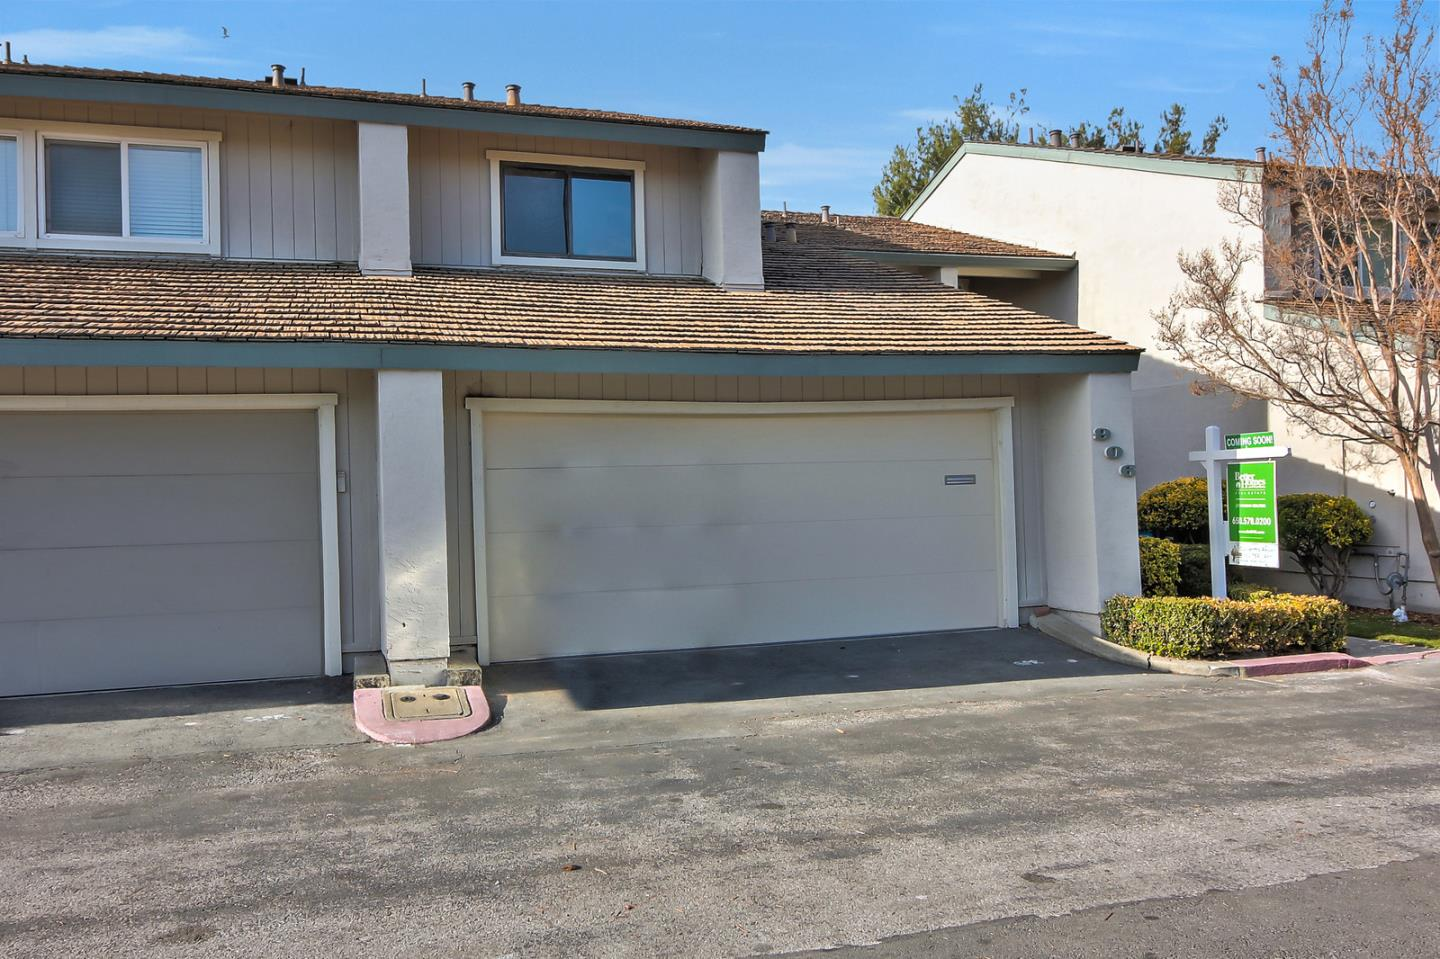 Townhouse for Sale at 906 Virgo Lane 906 Virgo Lane Foster City, California 94404 United States